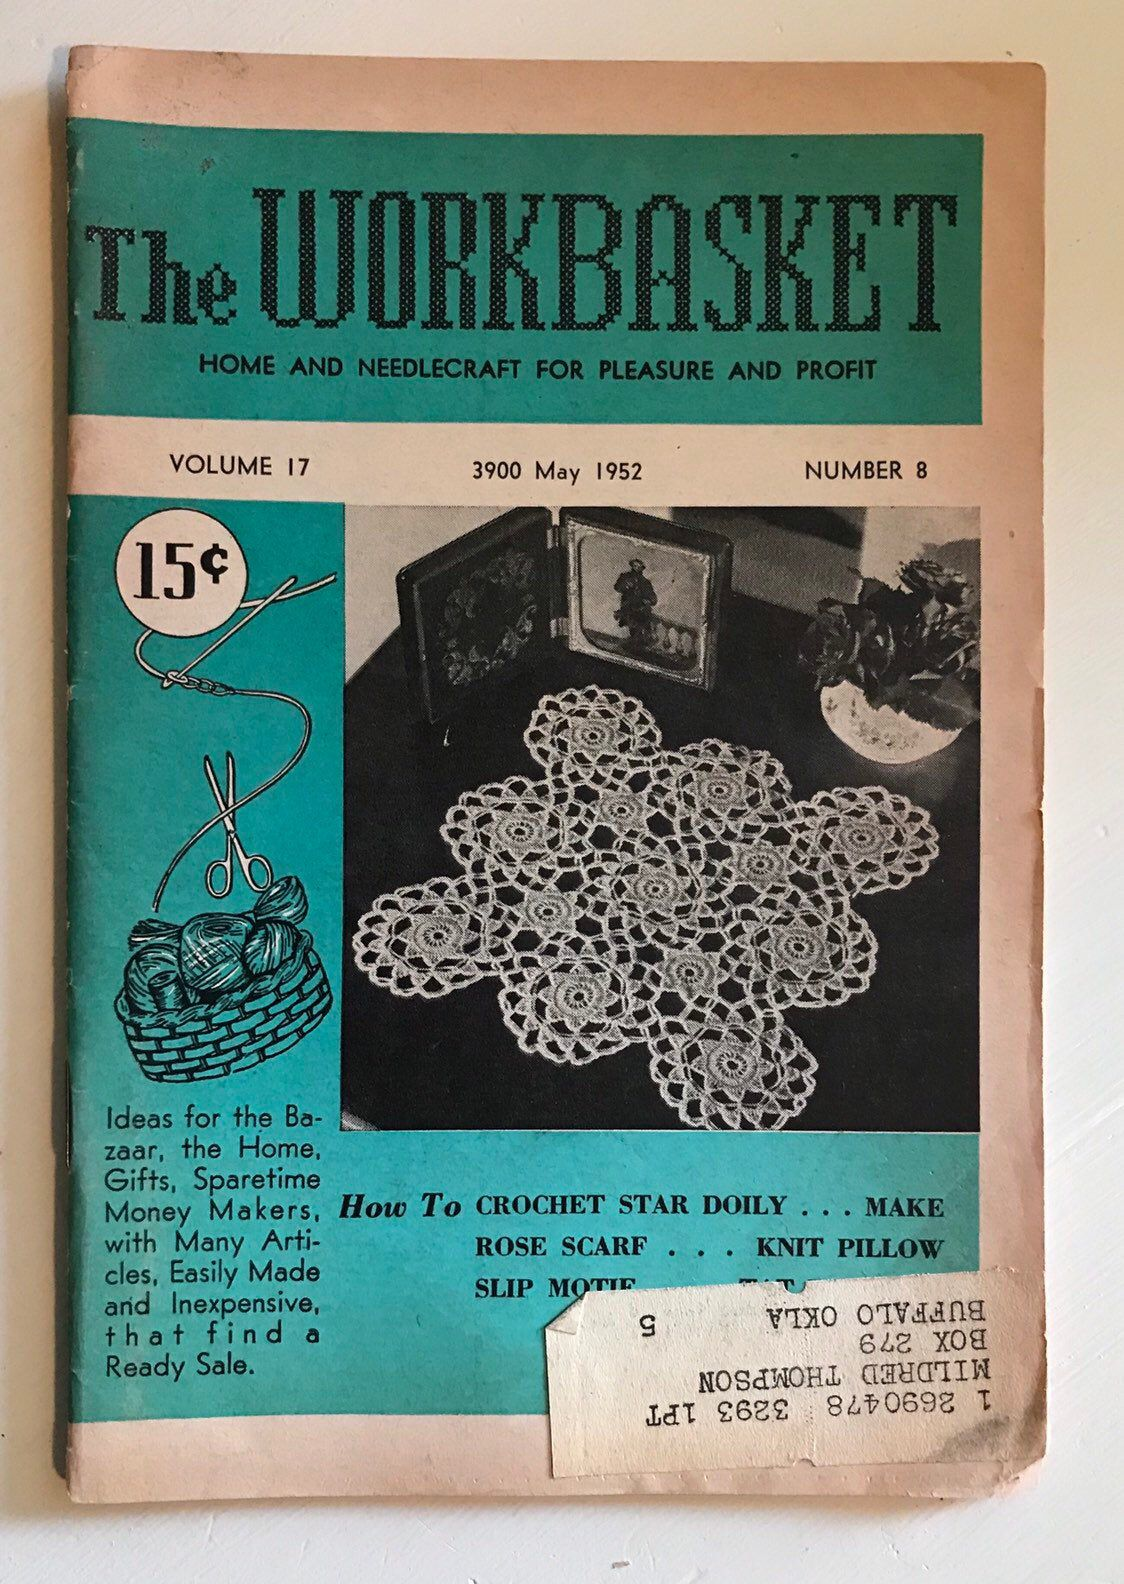 Excited to share this item from my #etsy shop: Vintage .... the WORKBASKET   Home and Needlecraft for Pleasure & Profit  Volume 17  Number 8  May 1952